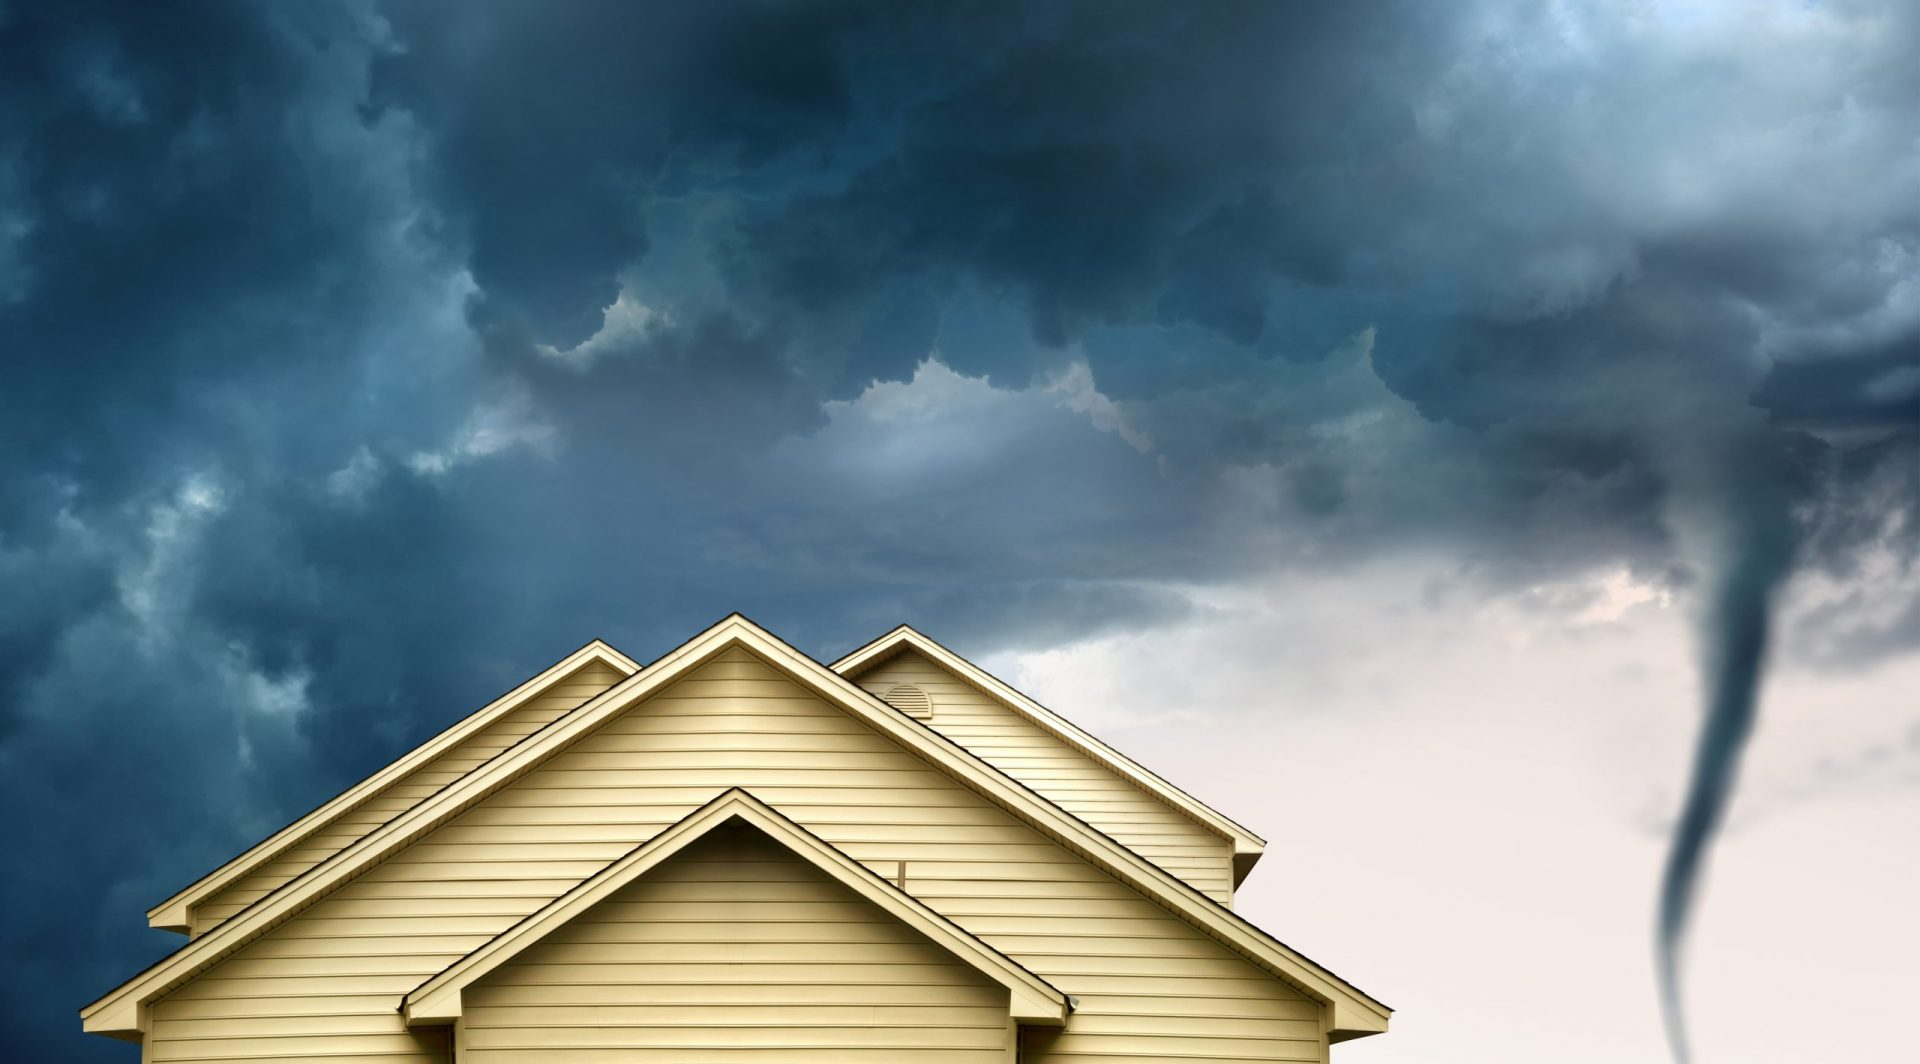 close up rooftop of a wooden house over stormy clouds sky and approaching tornado.